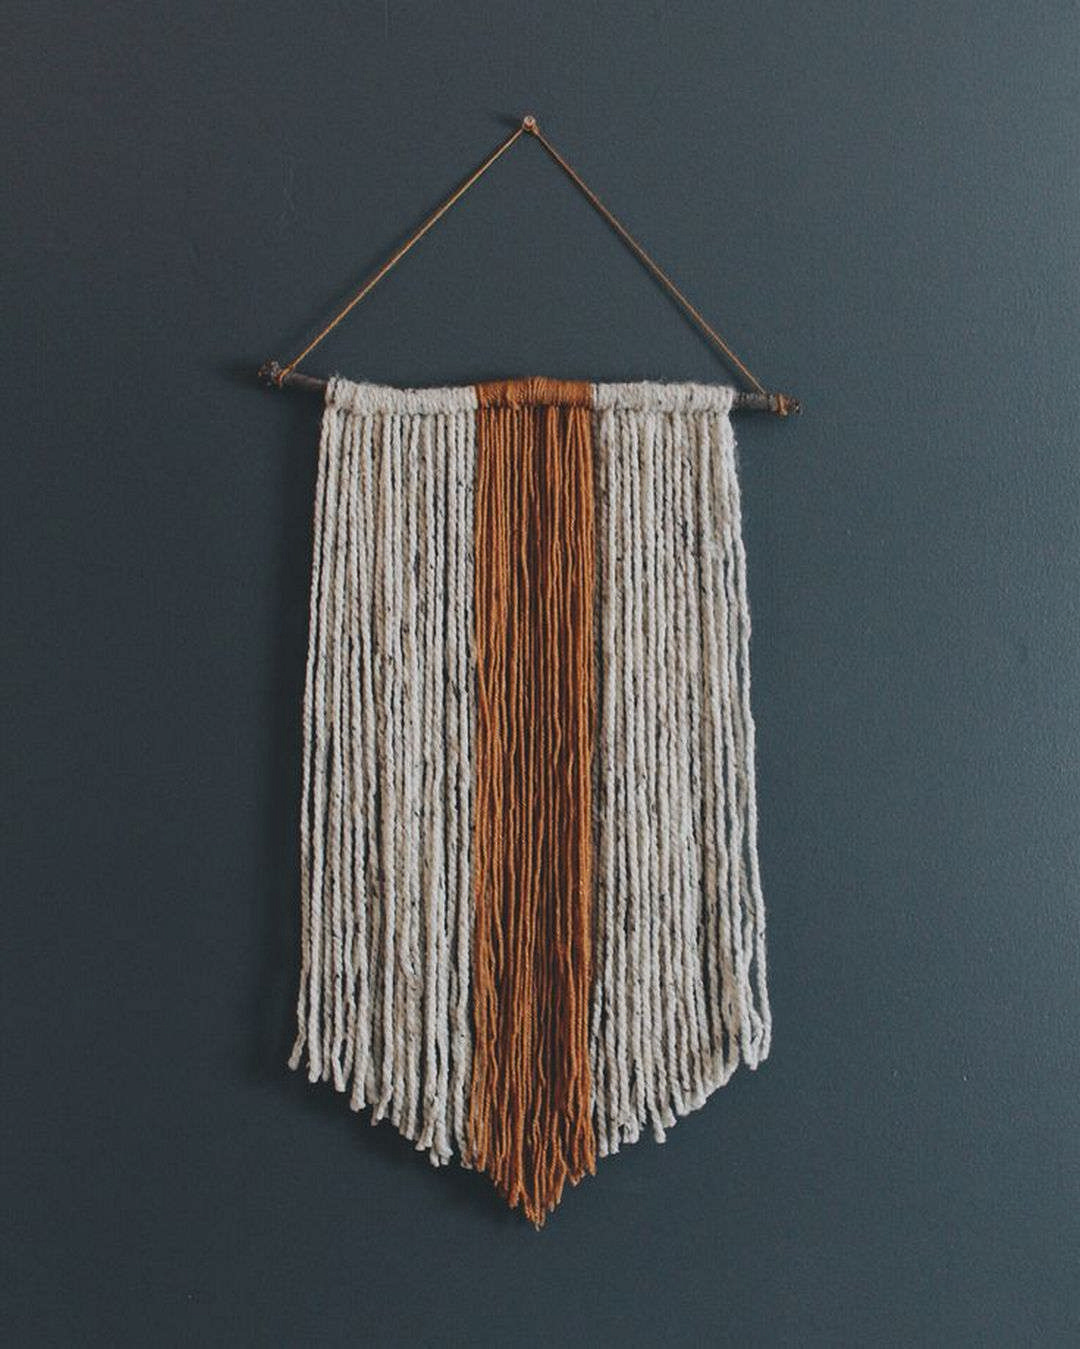 DECORATIVE WALL HANGINGS 101